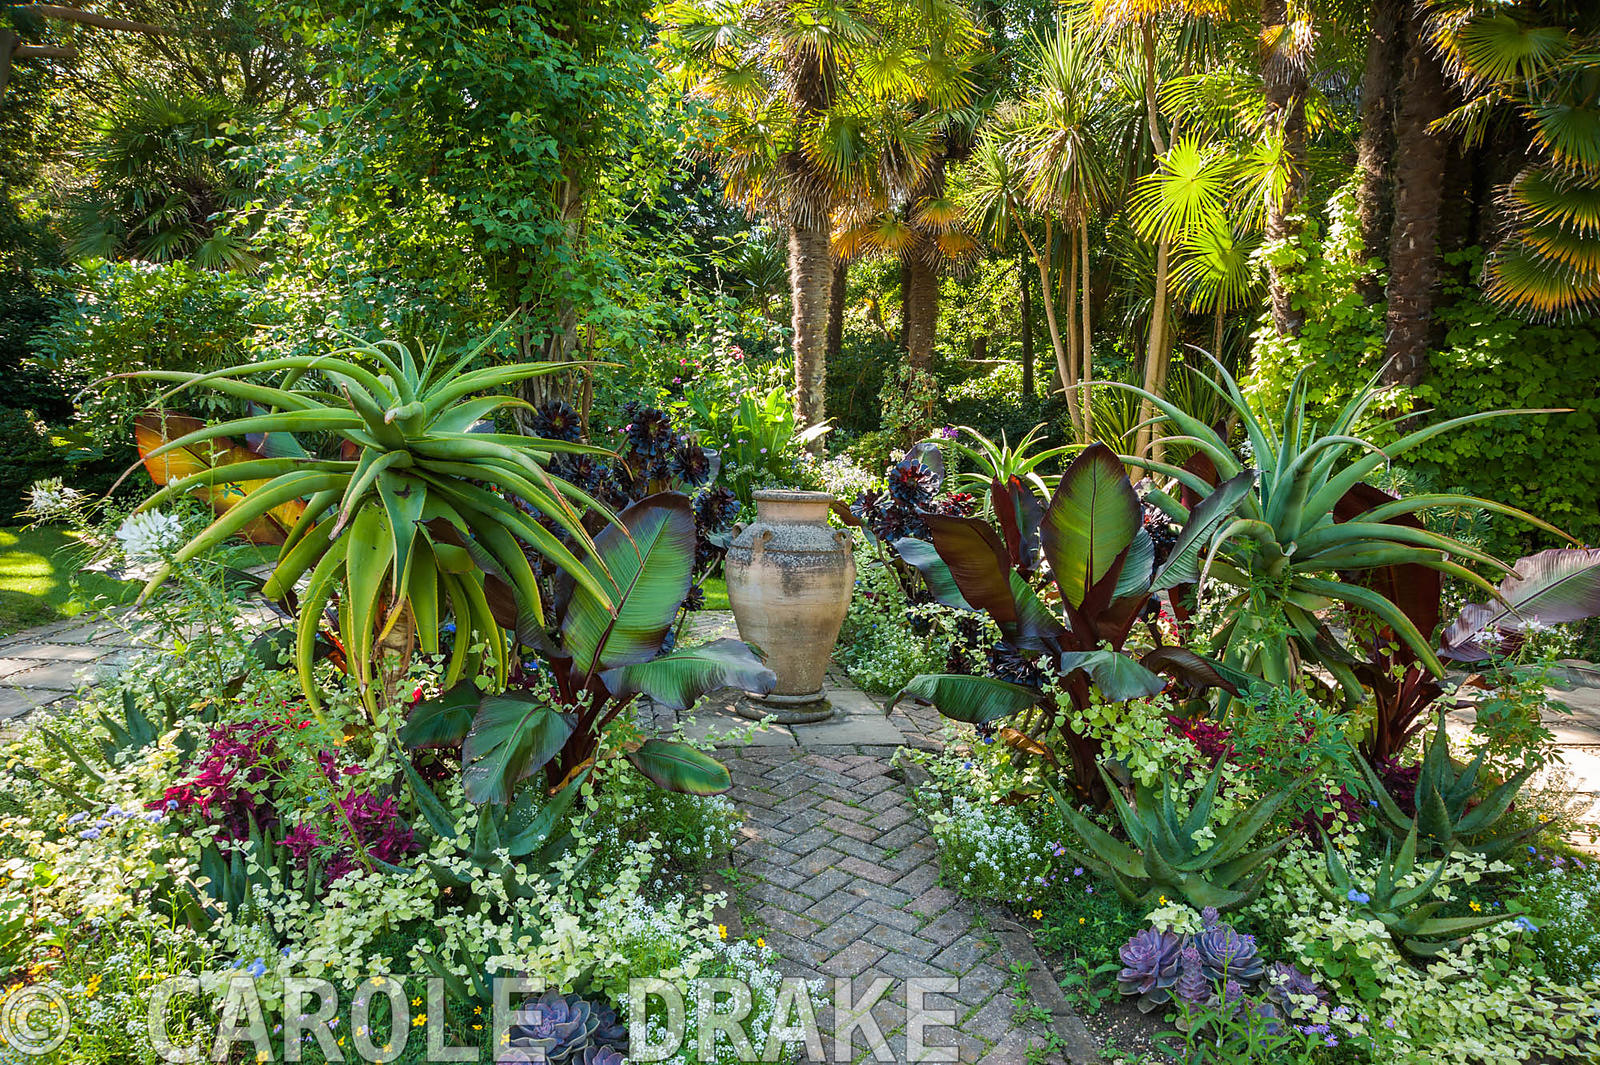 Carole drake exotic bedding in the victorian garden for Victorian garden trees